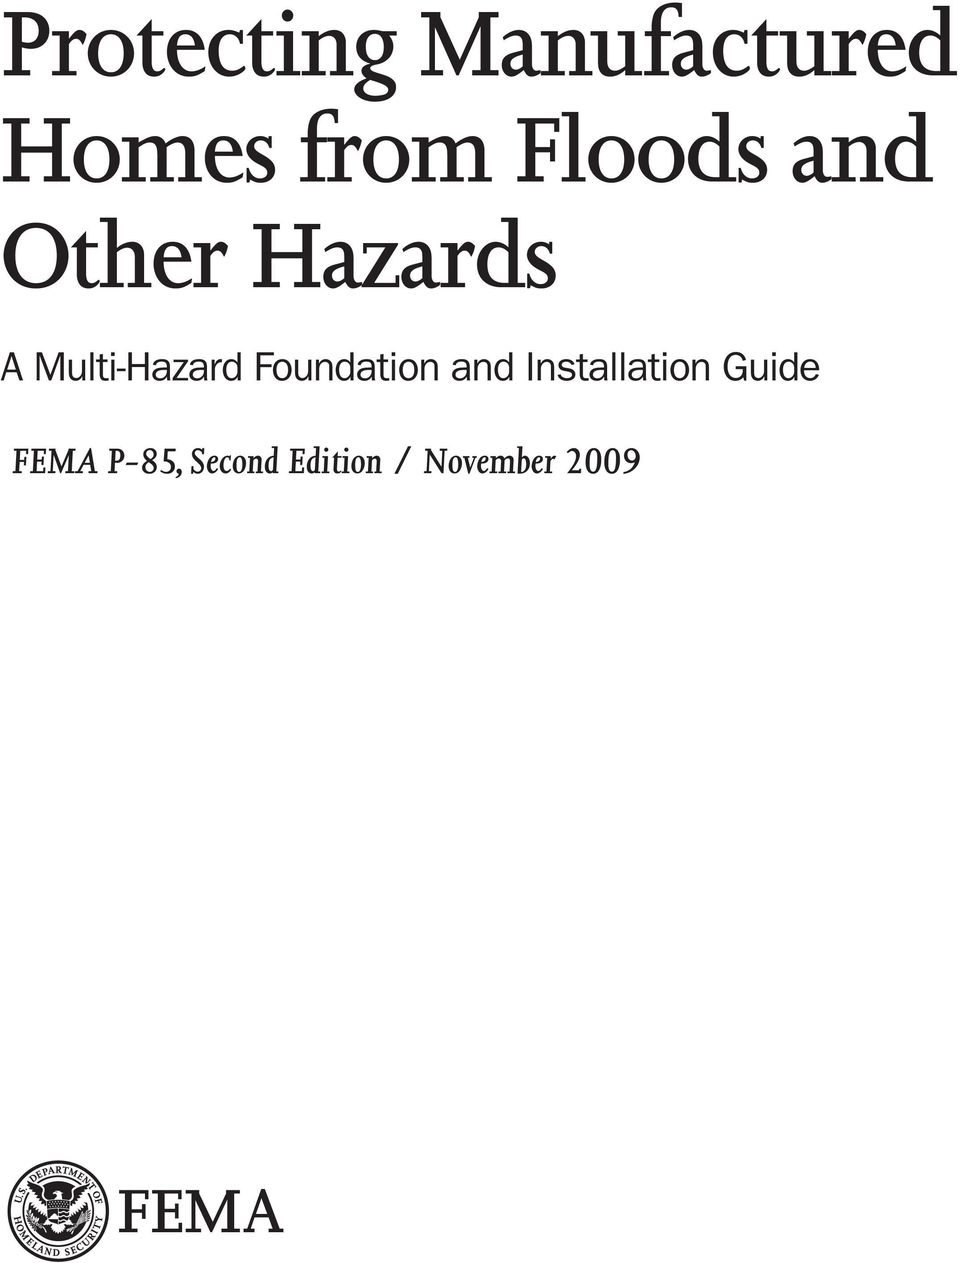 Other Hazards FEMA P-85,